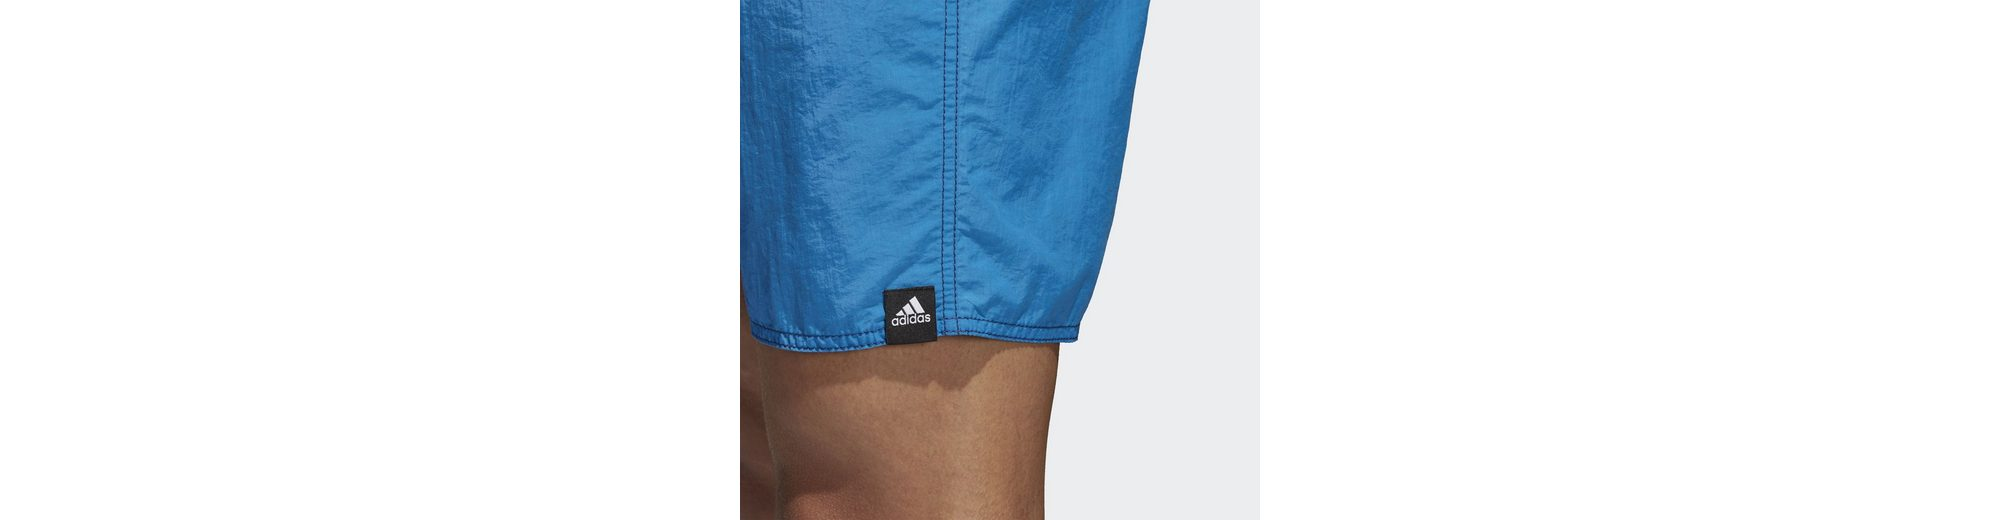 Performance Solid Shorts Adidas Adidas Performance Shorts qcP7BtW1a